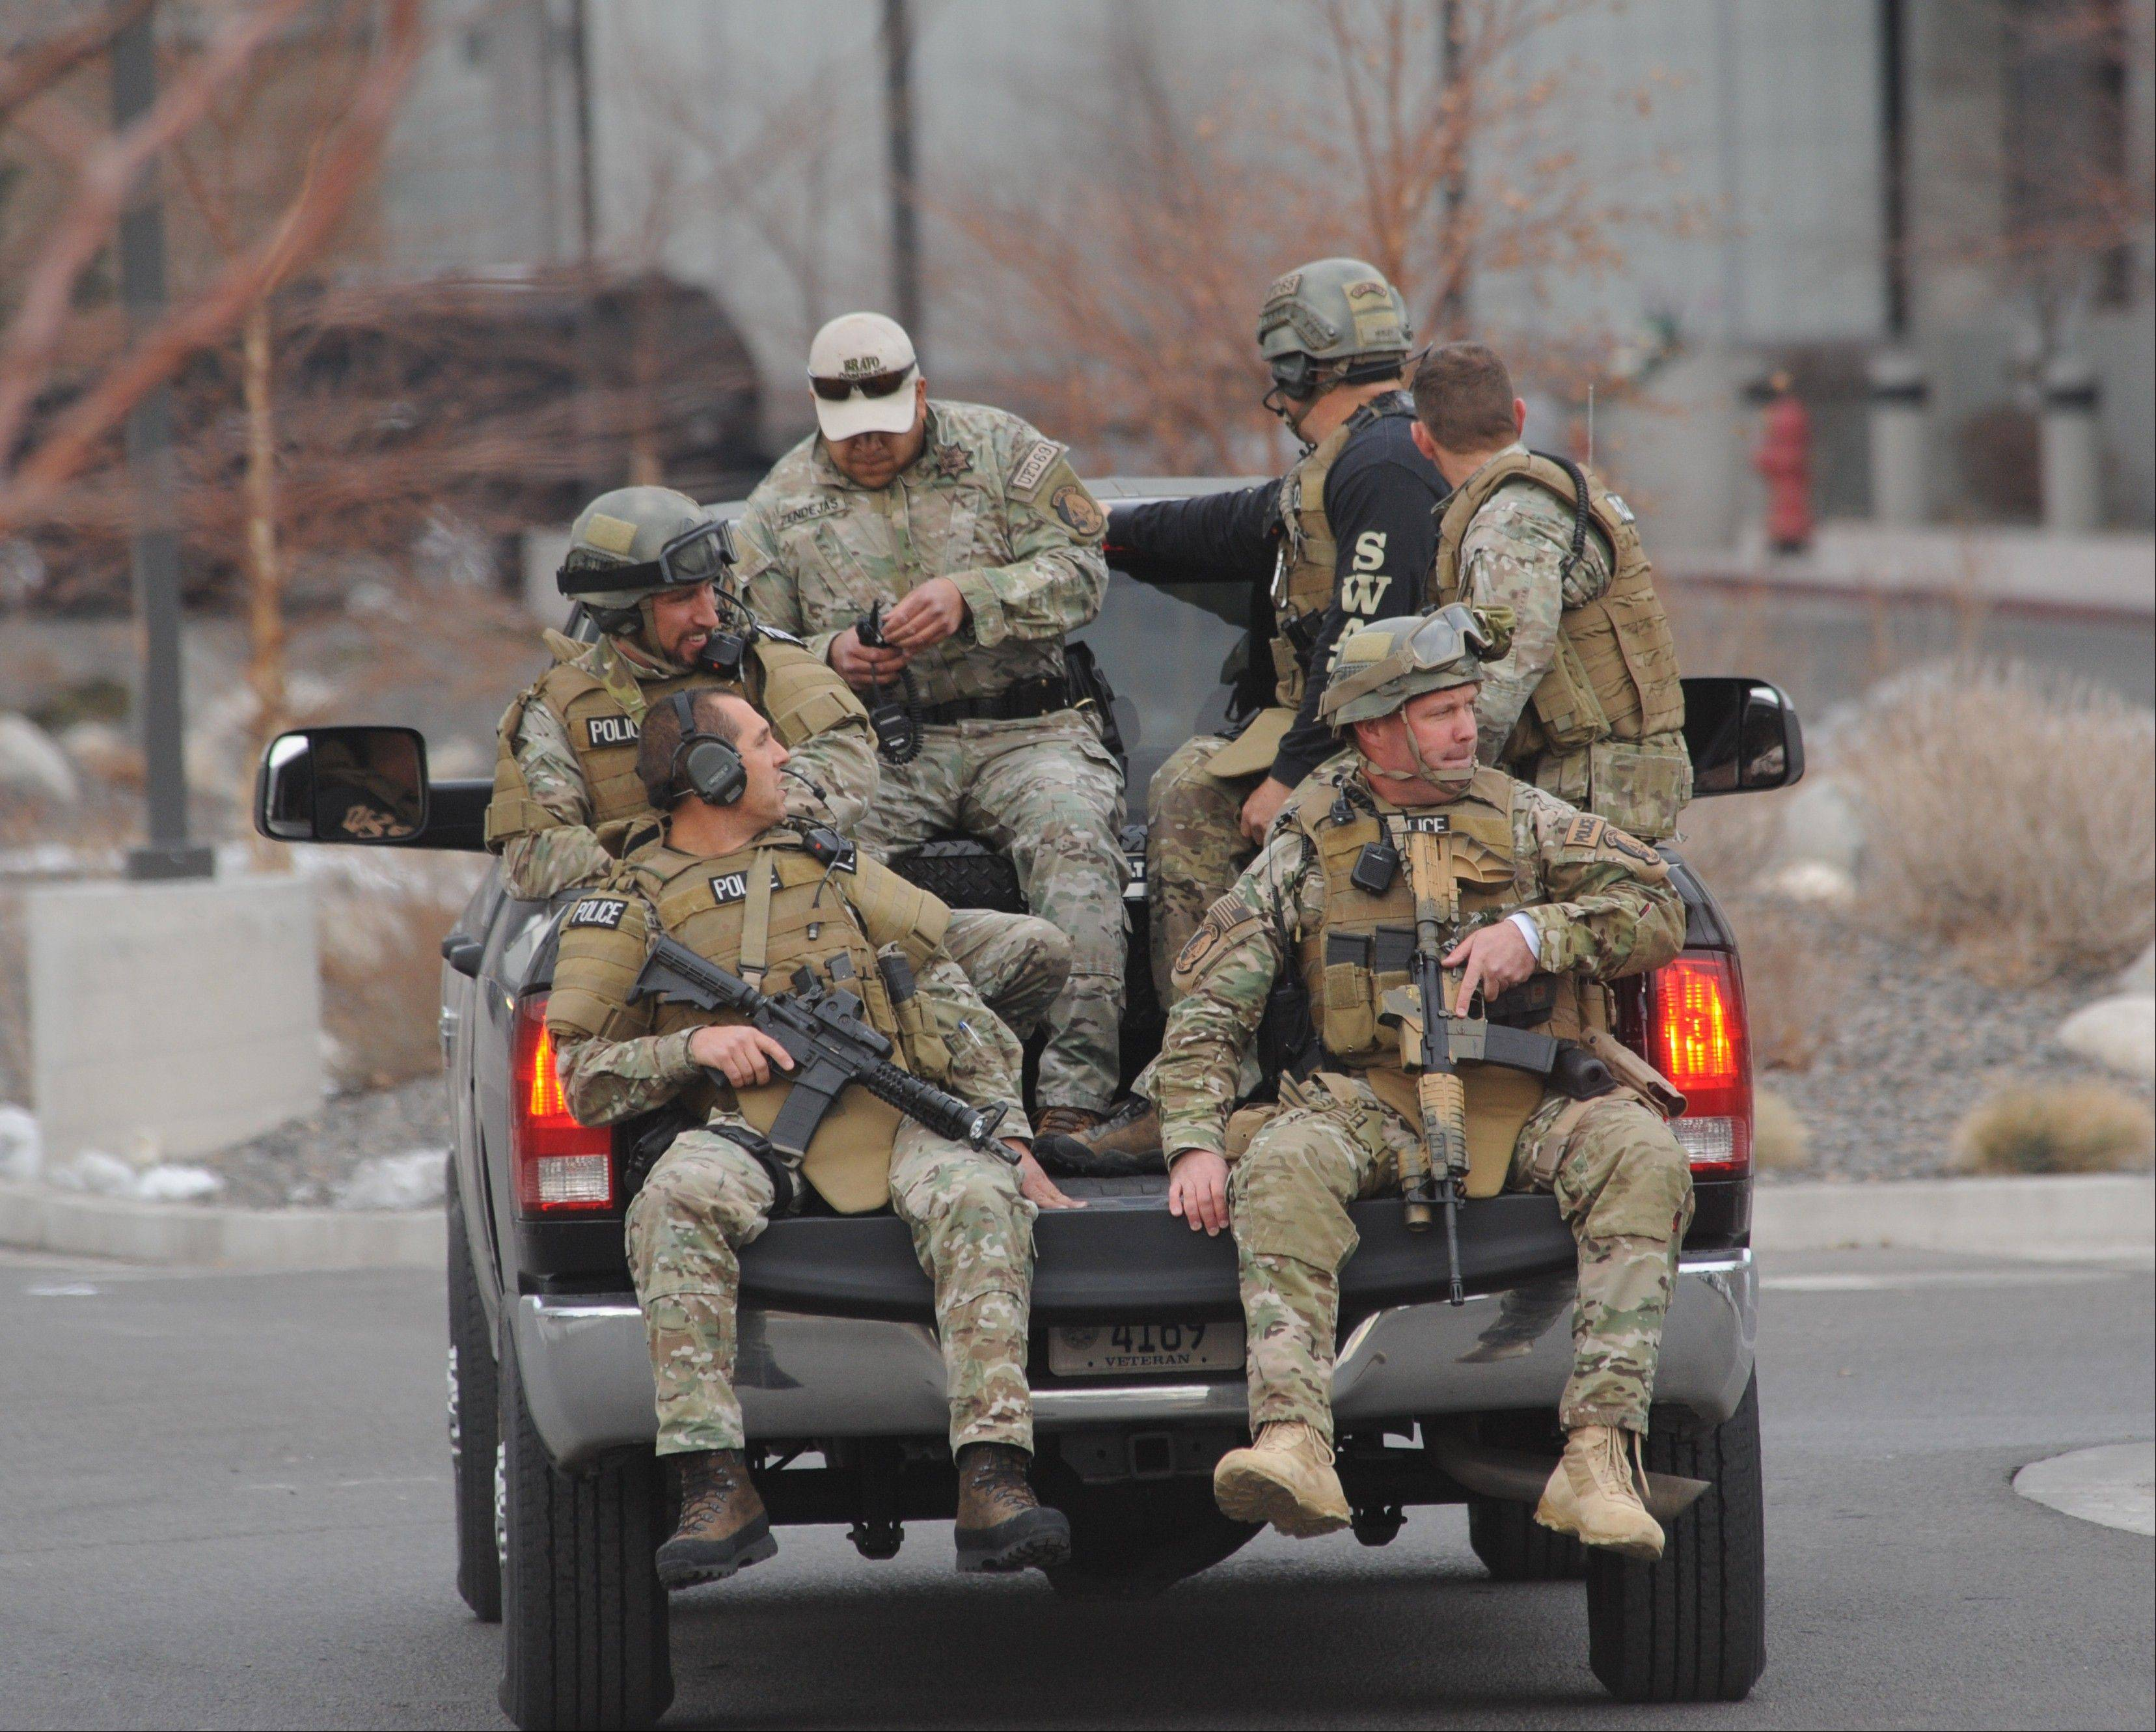 SWAT team members are trucked from near the Renown helicopter pad to the Renown Medical Center where a lone gunman killed one person and critically wounding two others before killing himself at the sprawling medical campus Tuesday in Reno, Nev.